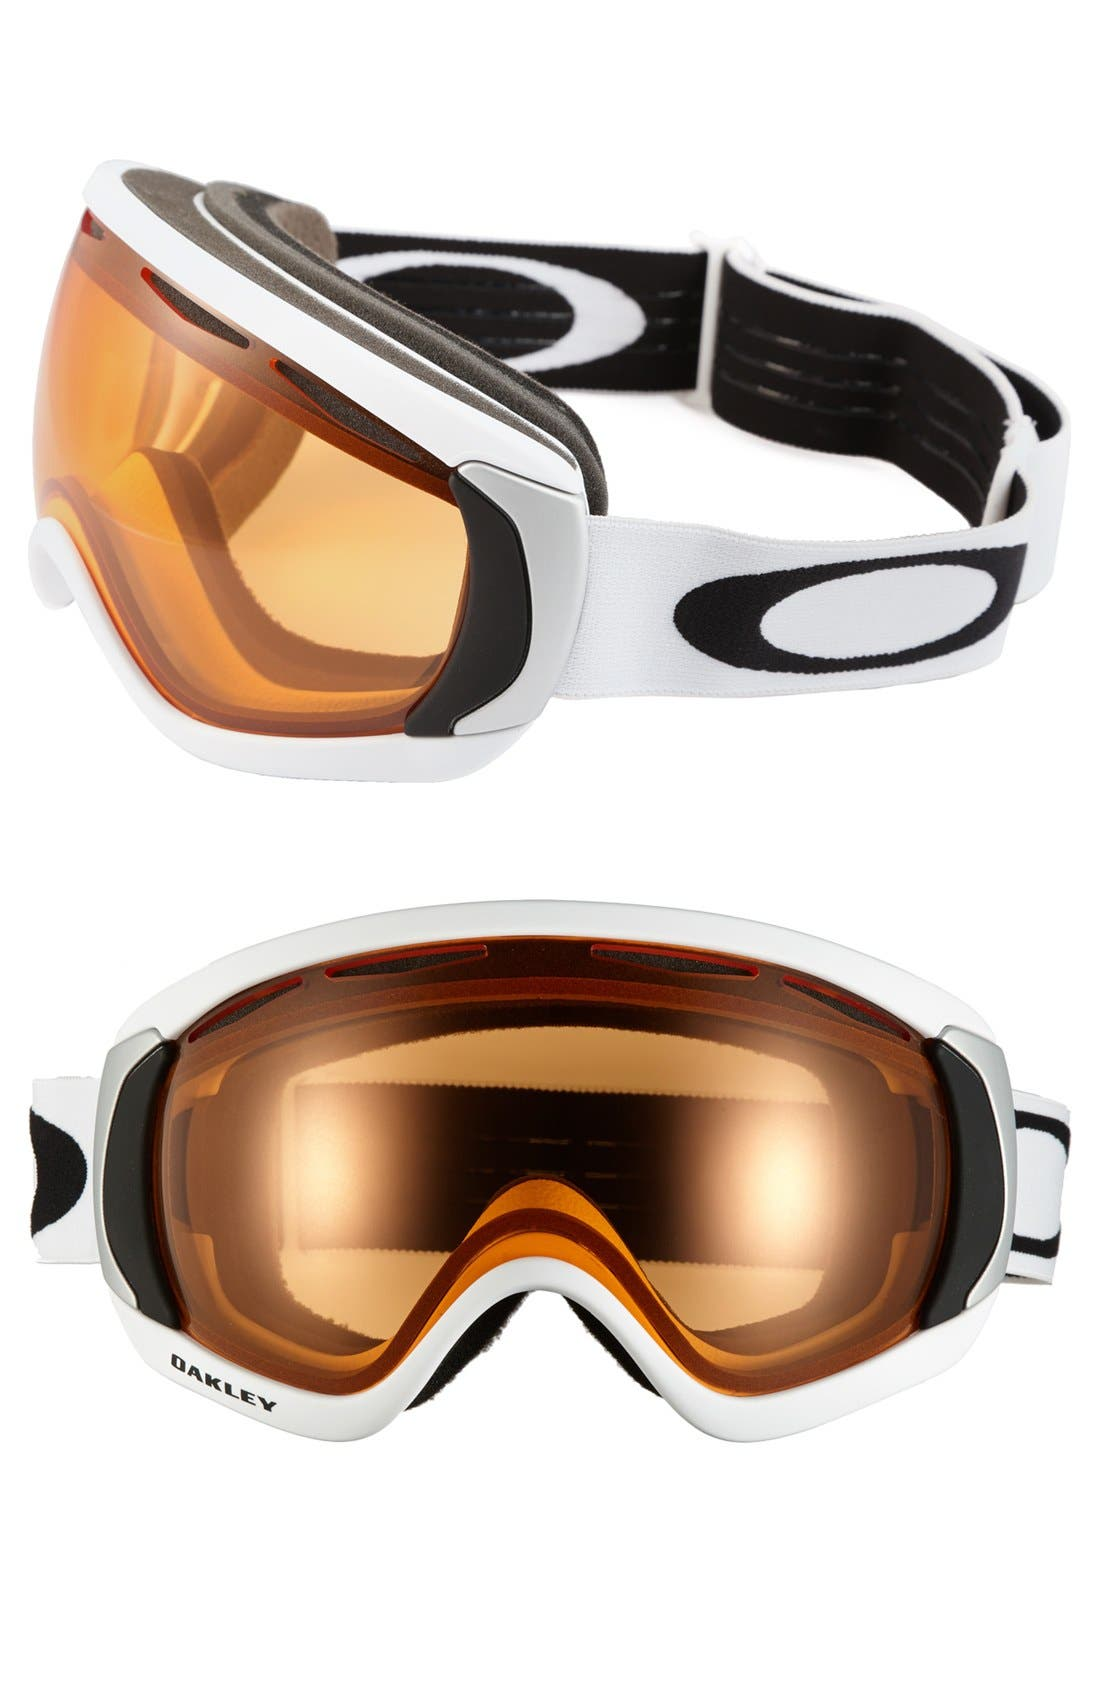 Alternate Image 1 Selected - Oakley 'Canopy' Snow Goggles